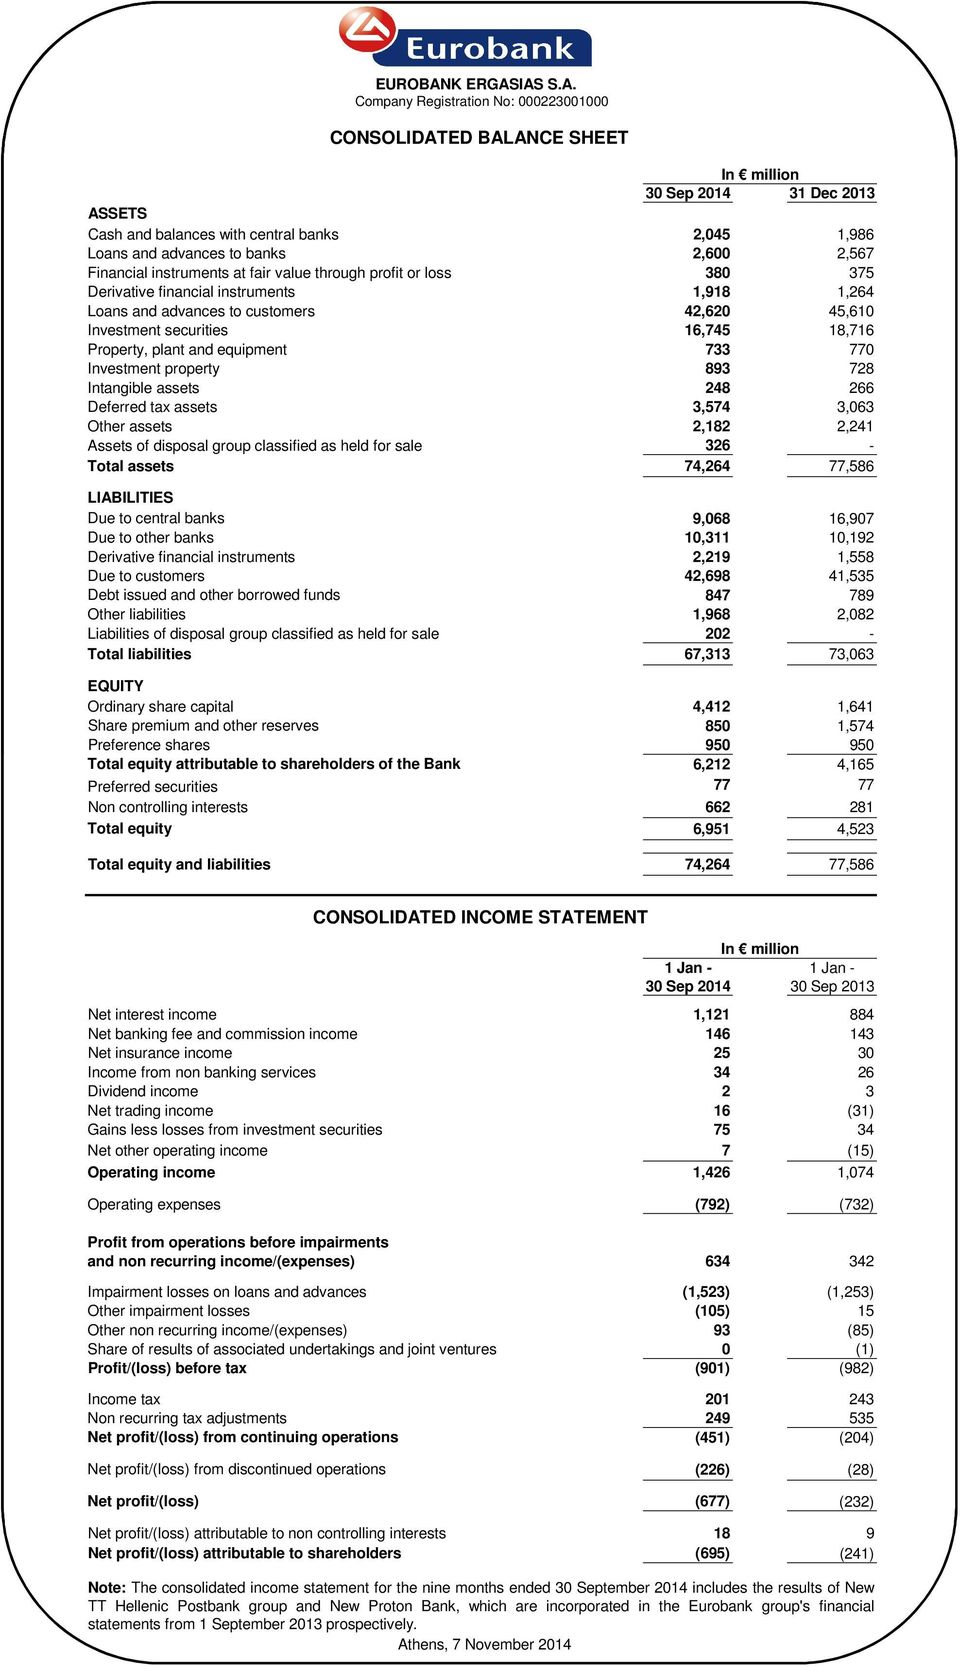 IAS S.A. Company Registration No: 000223001000 CONSOLIDATED BALANCE SHEET In million 30 Sep 2014 31 Dec 2013 ASSETS Cash and balances with central banks 2,045 1,986 Loans and advances to banks 2,600